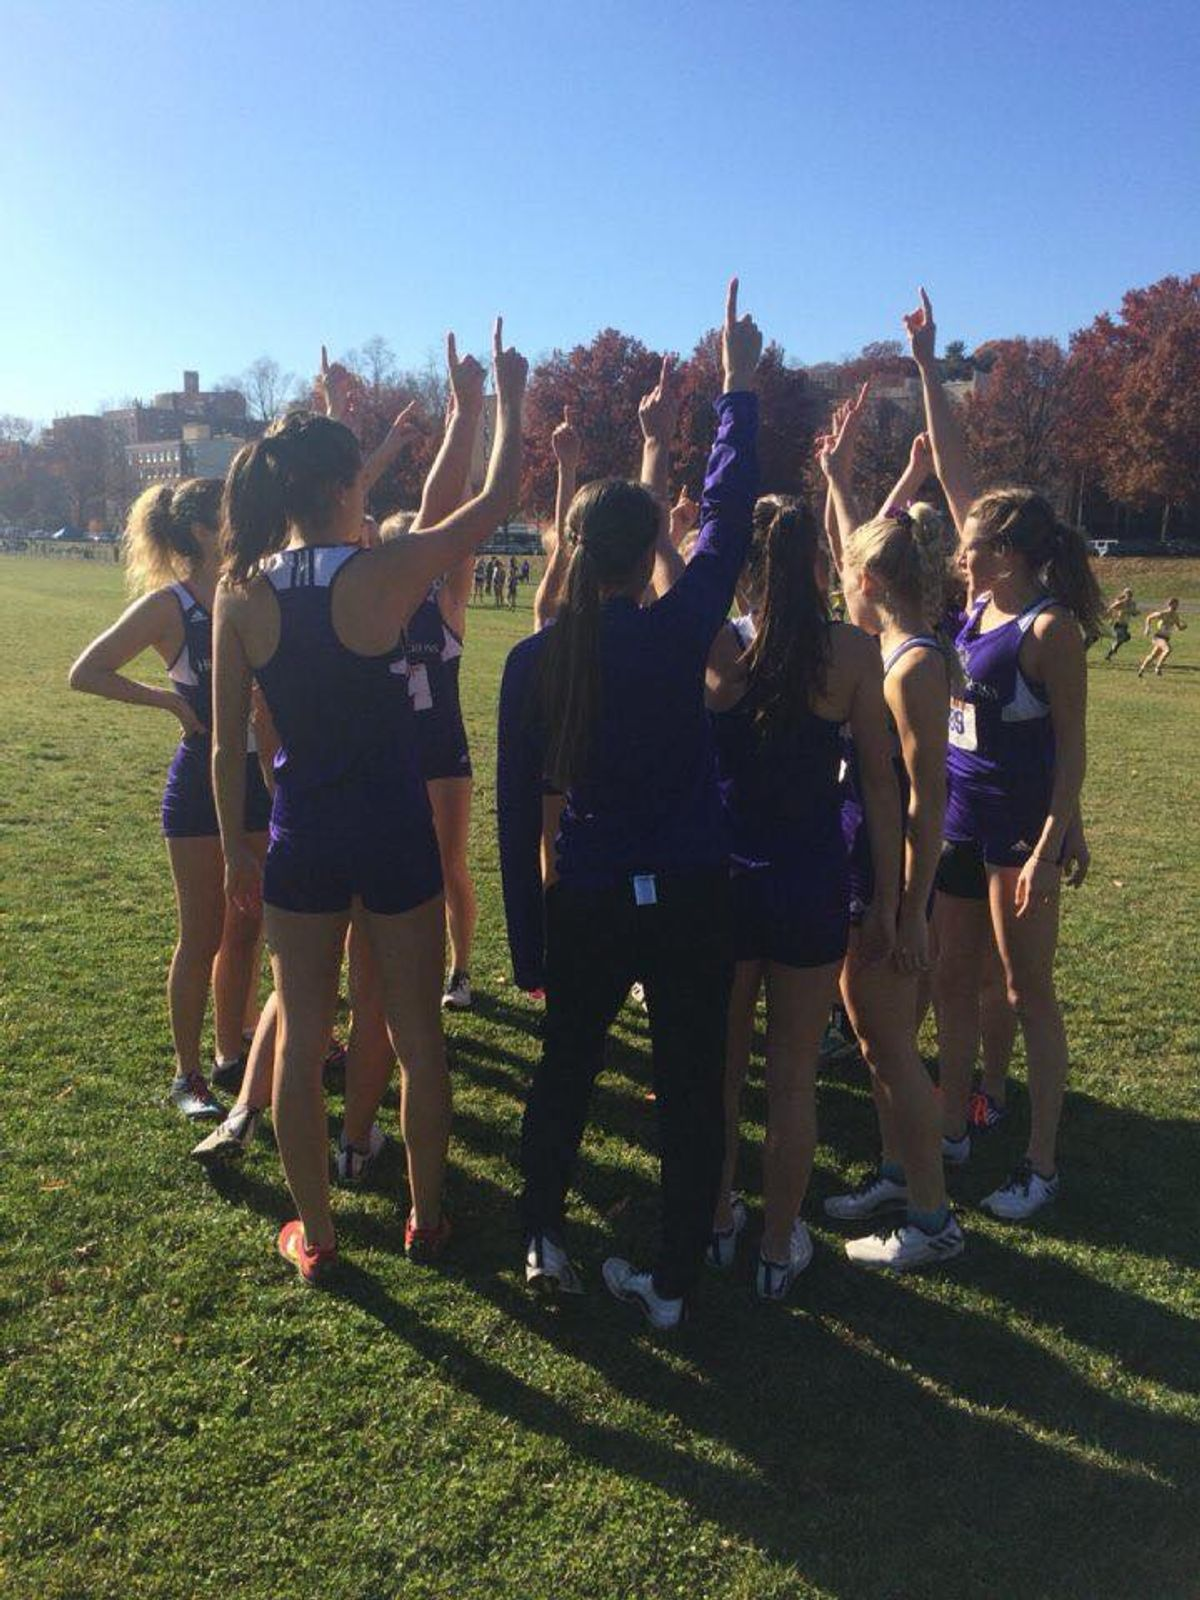 An Open Letter To Cross Country